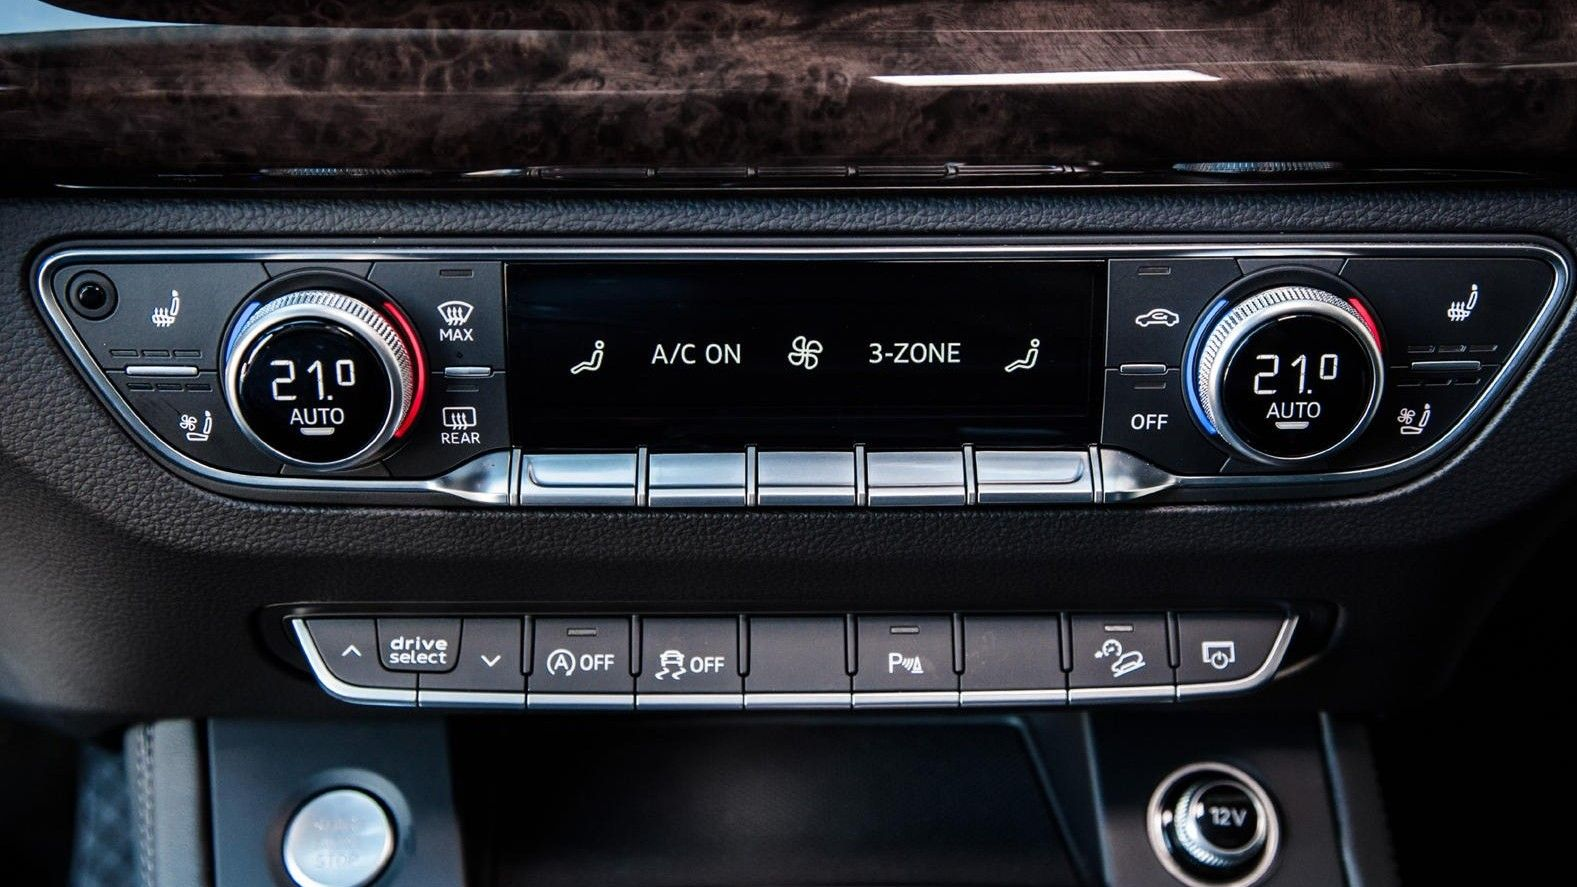 2020 Audi Q5 SUV Infotainment Display